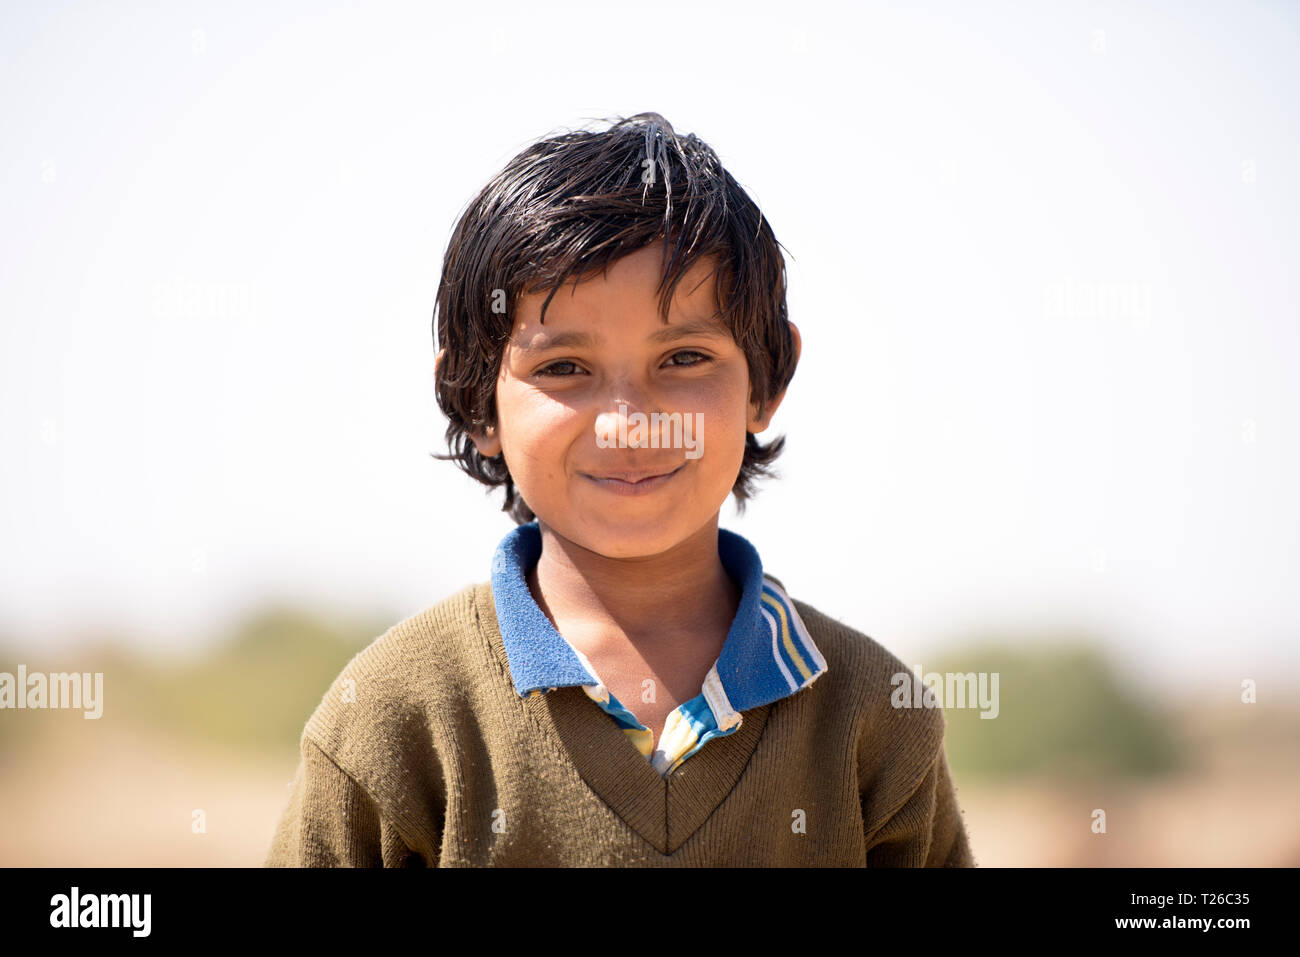 A young Bhil tribe boy, Rajasthan, India. - Stock Image